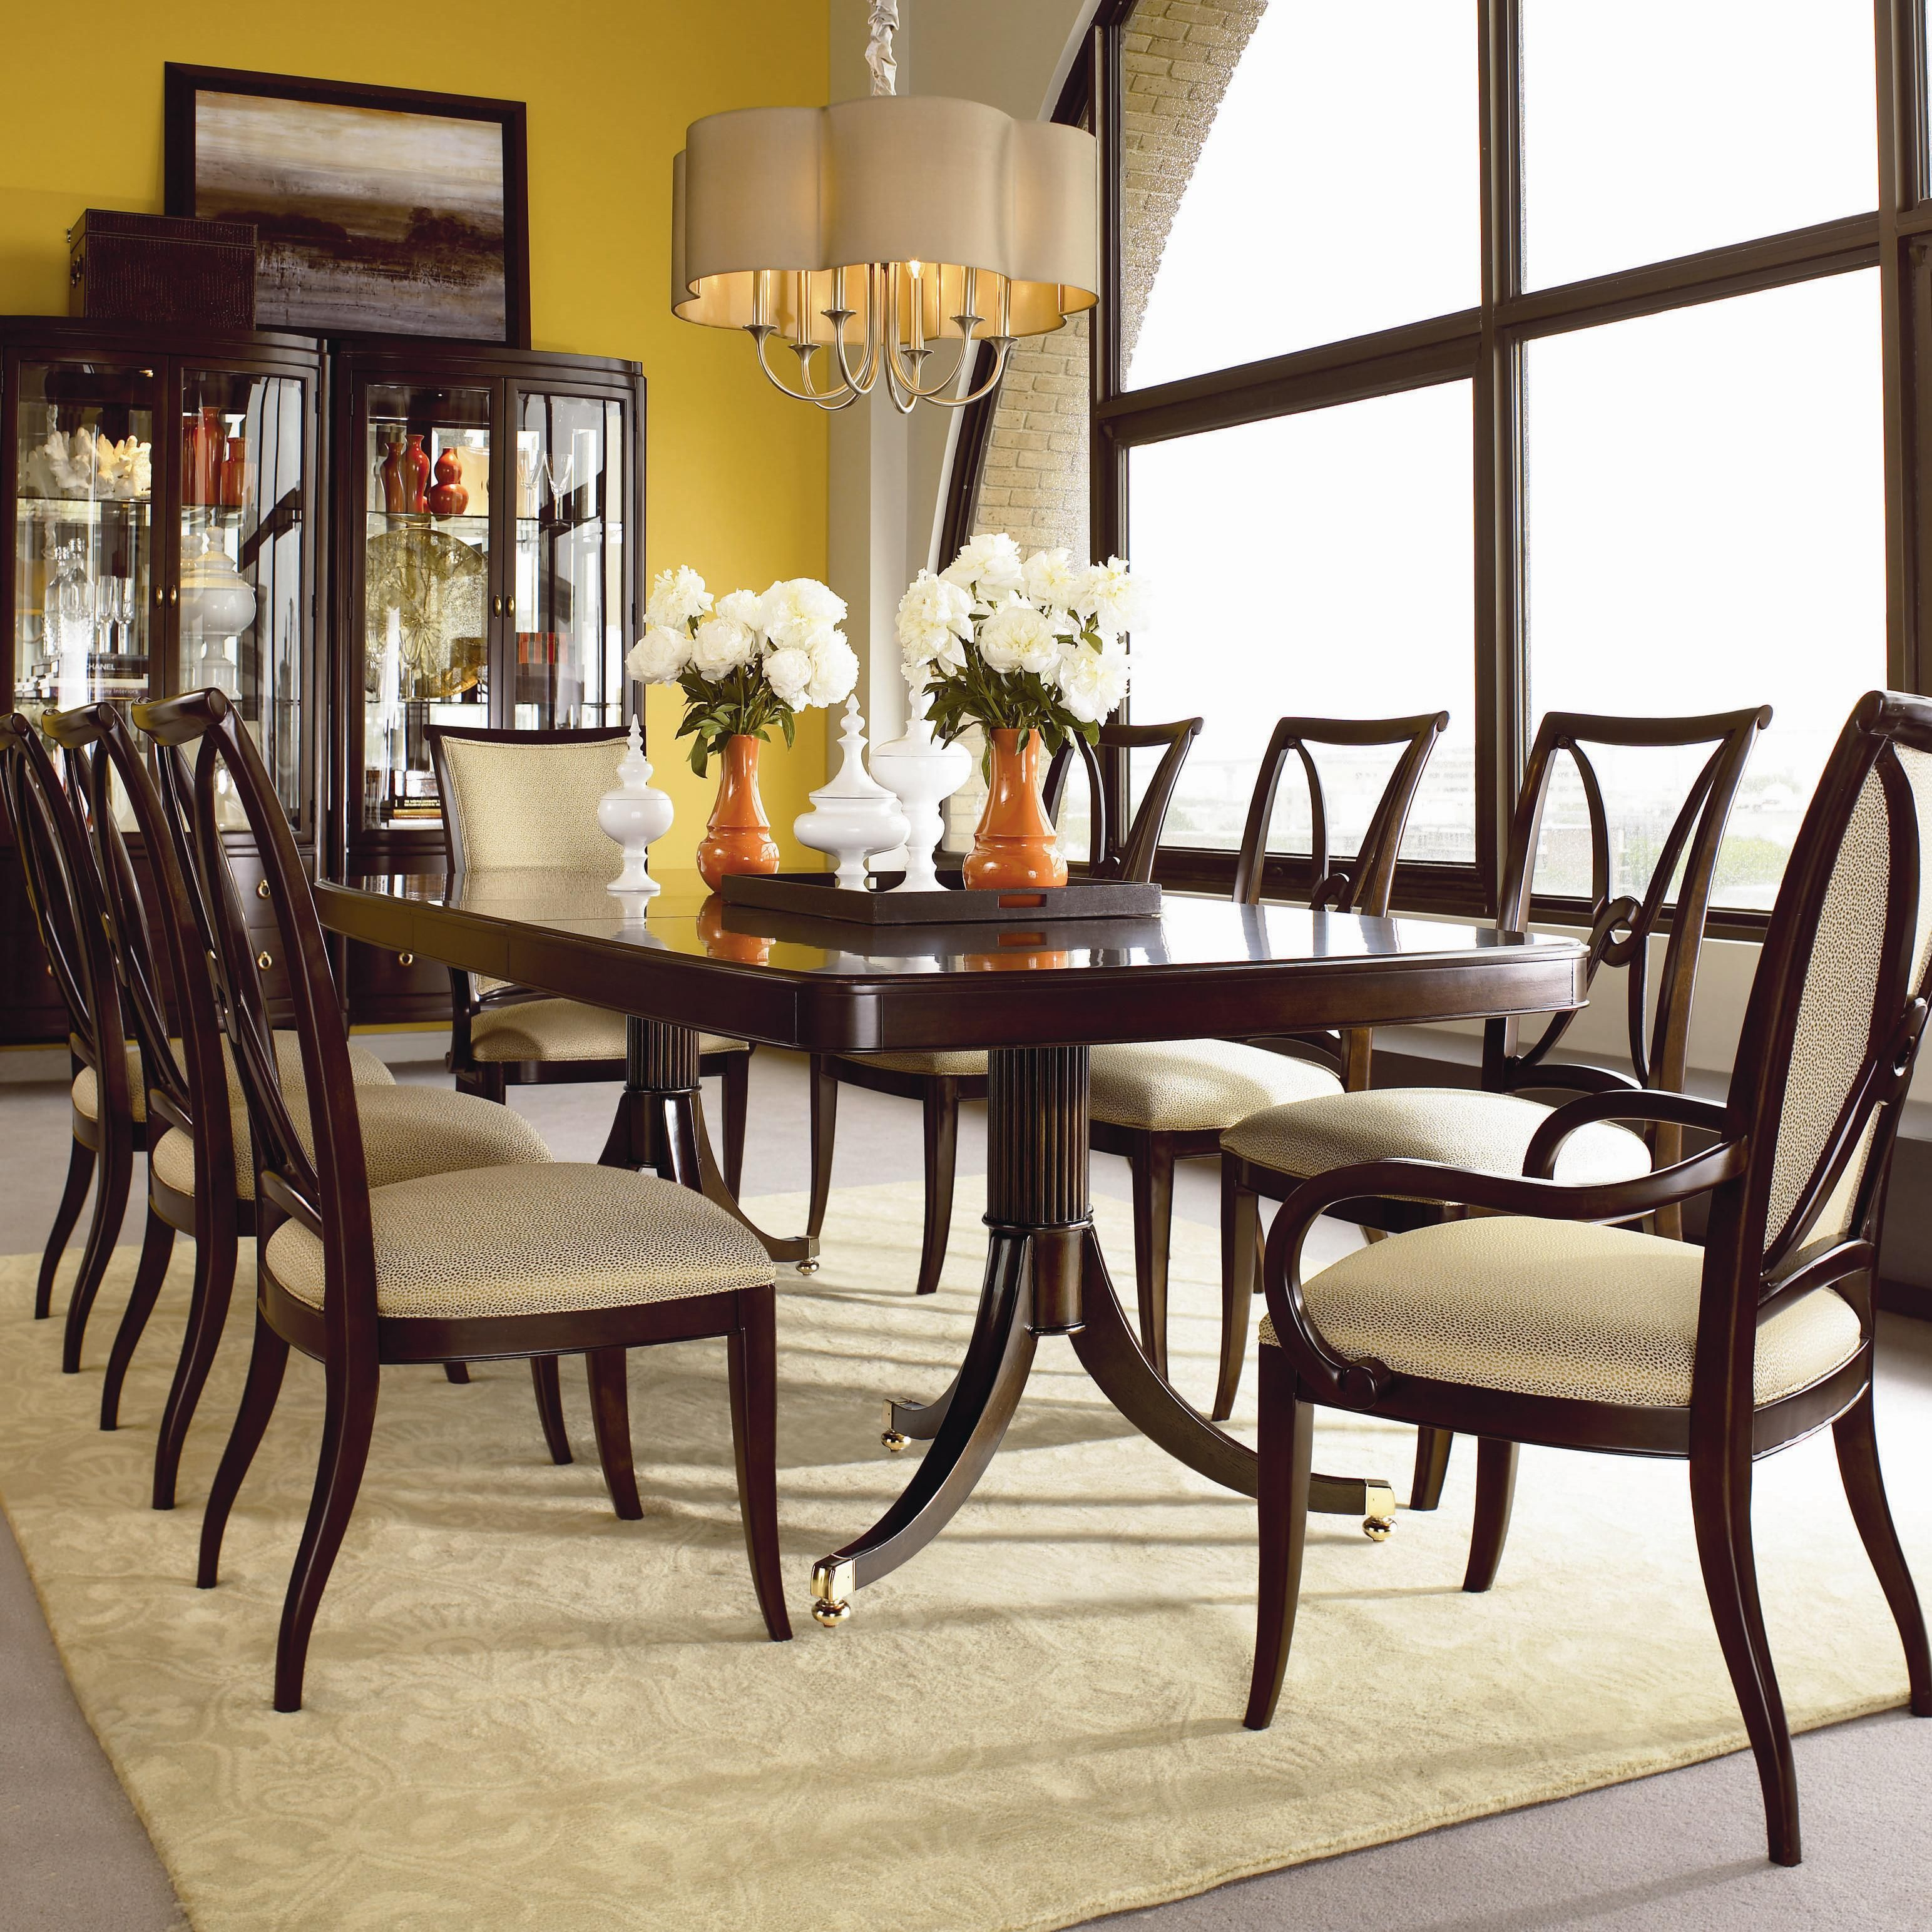 Studio 455 Nine Piece Dining Set by Thomasville